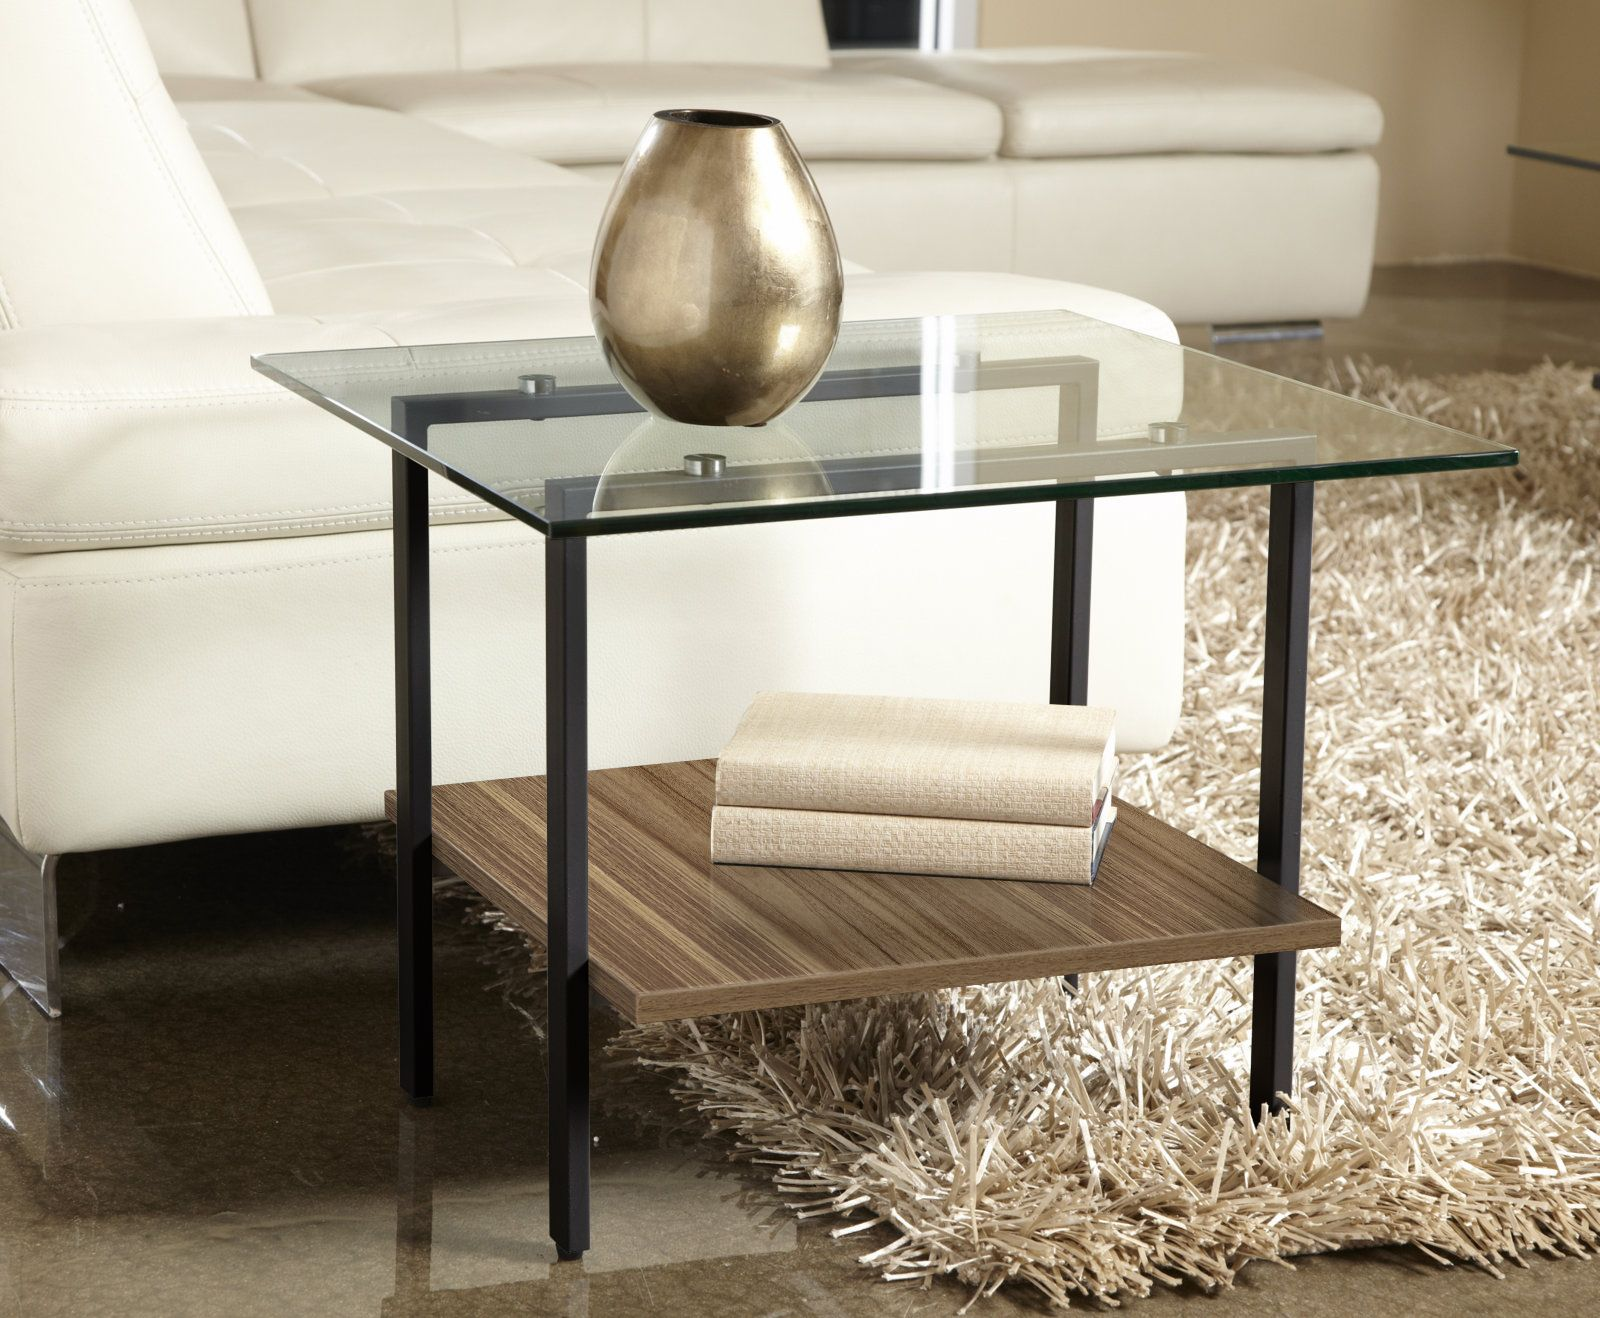 Modern Glass Side Table | New things for my condo | Pinterest ...